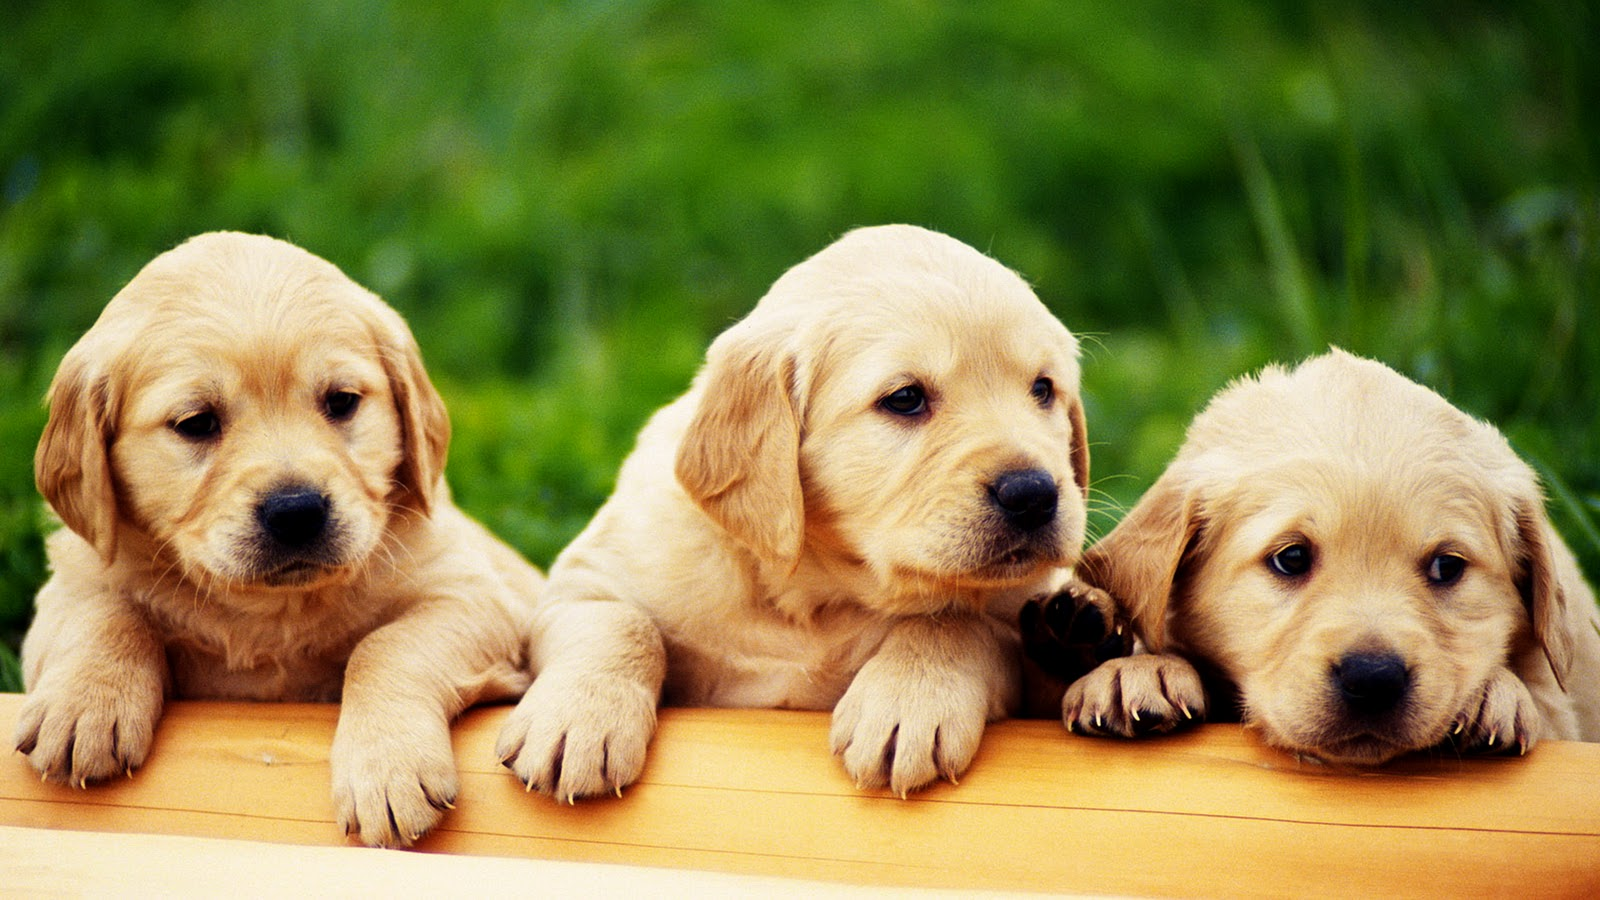 Central Wallpaper: Cute Puppies HD Wallpapers Collection